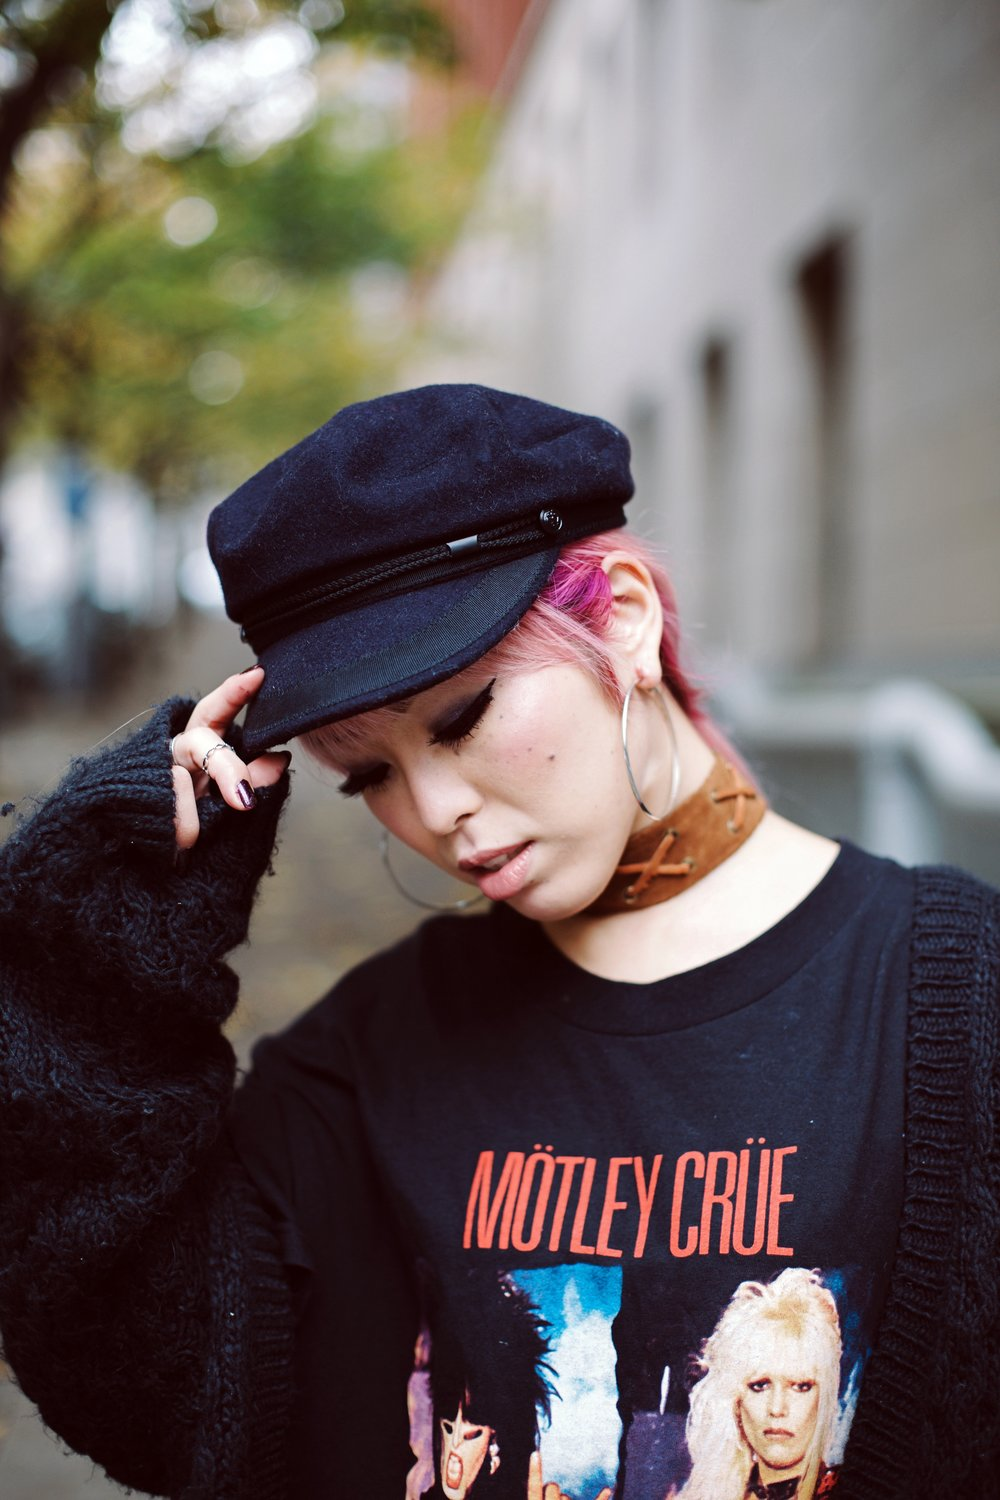 Isabel Marant Hat-Forever 21 hoop earrings-Free People Double Crossed Suede Choker-Vintage Rock T-shirt-Zara sheer top & EMBROIDERED CLUTCH-H&M Chunky Cardigan-Aika's love Closet-Seattle Fashion Blogger-Japanese-Pink hair-Colored Hair 2